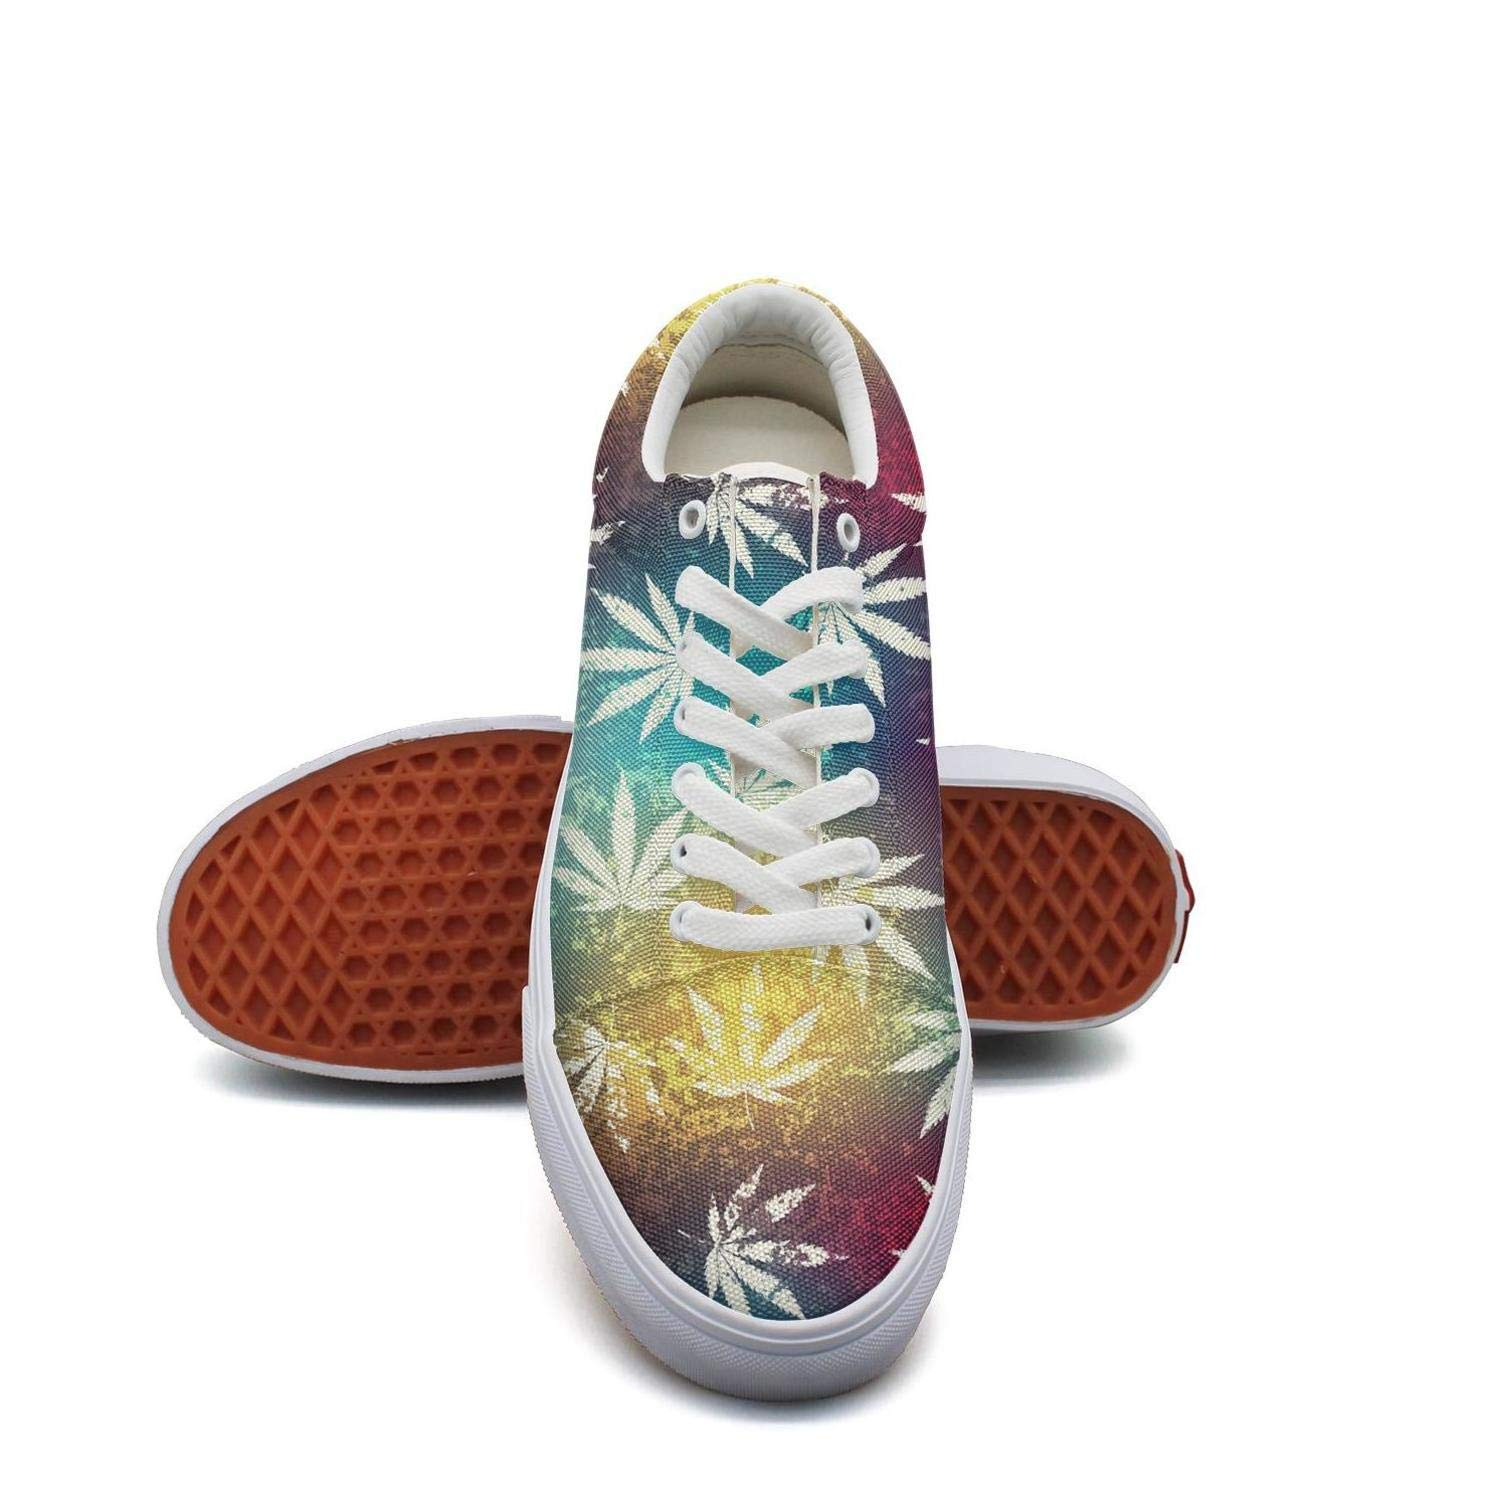 Mortimer Women's Canvas Fashion Sneakers Cannabis Charm Grunge Hemp Leaves Skate Shoe Lace Up Casual Shoes